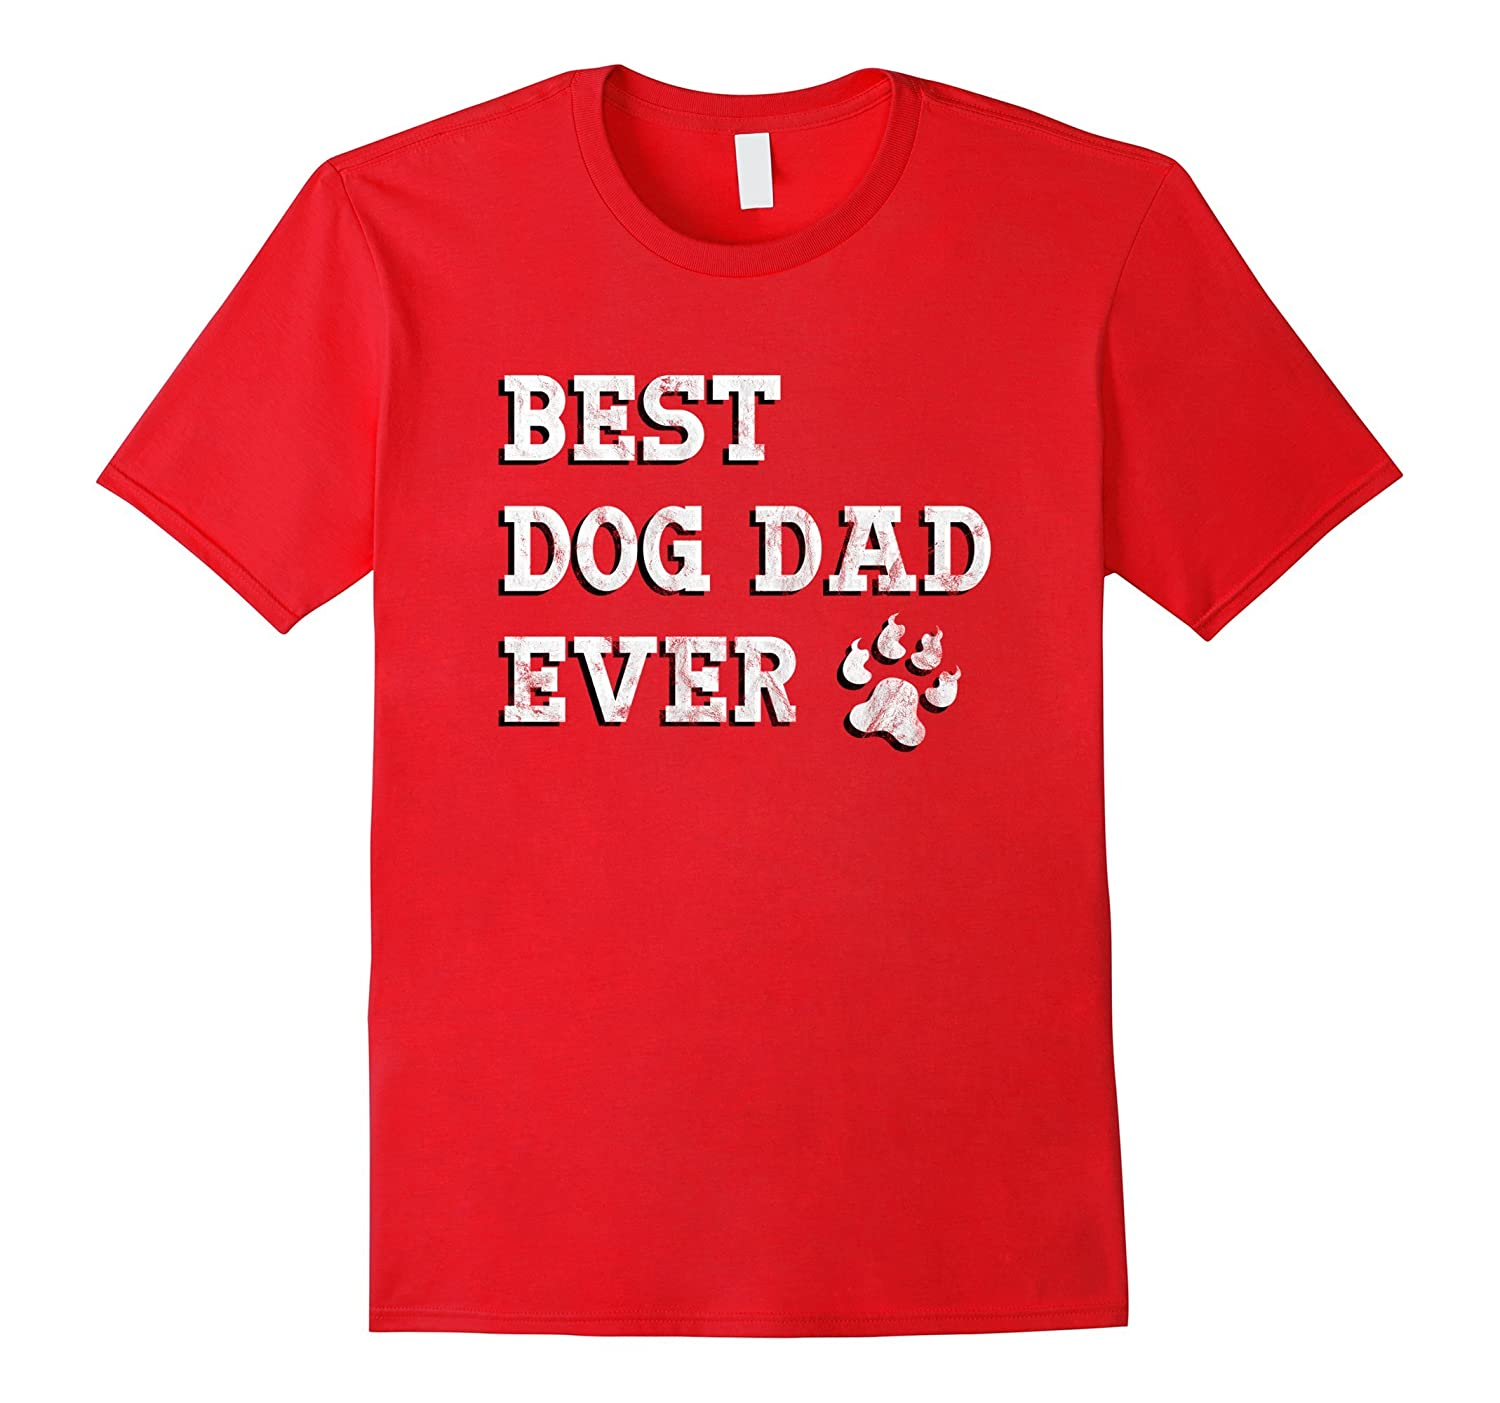 Best Dog Dad Ever Shirt Outfit Dogs Funny Fathers Day Gift-TH